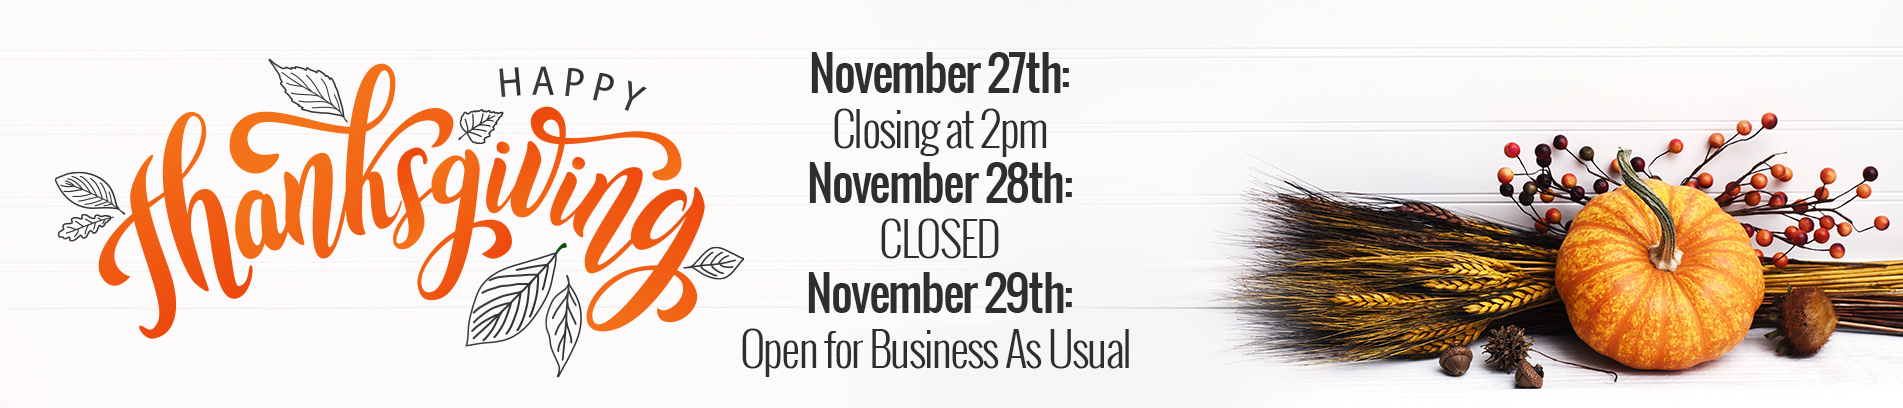 Happy Thanksgiving - we will be closed